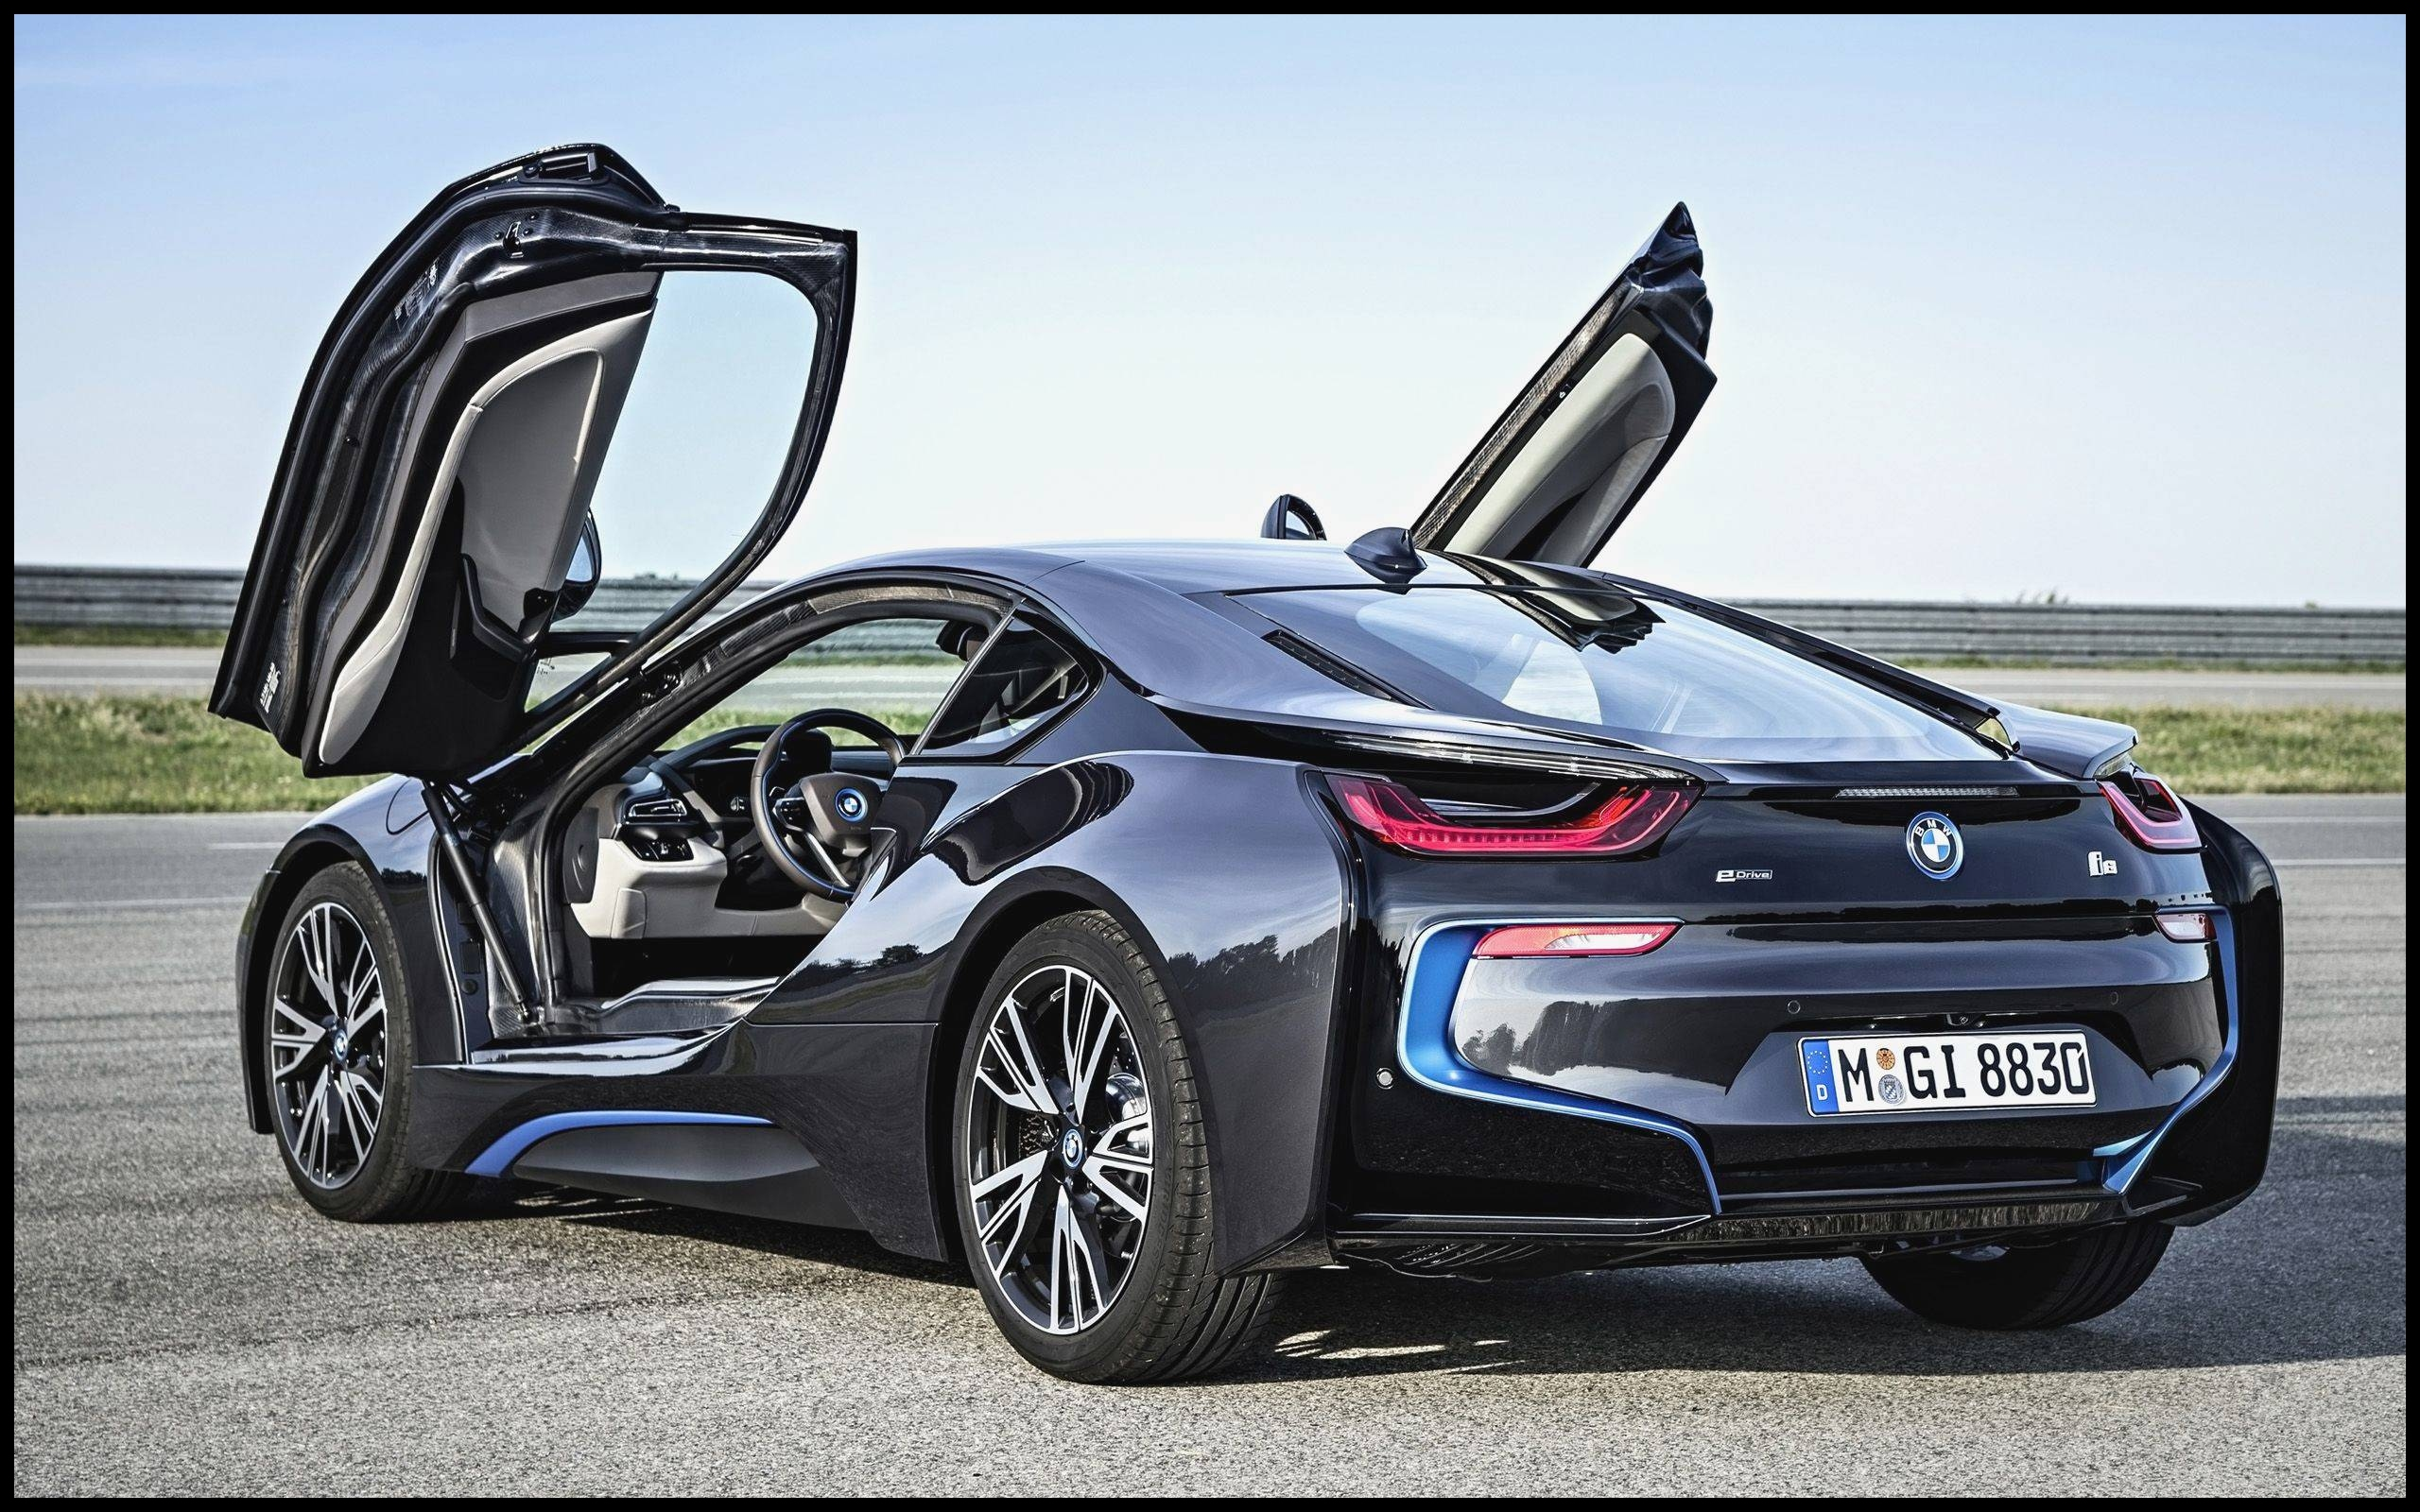 Bmw with butterfly Doors Bmw I8